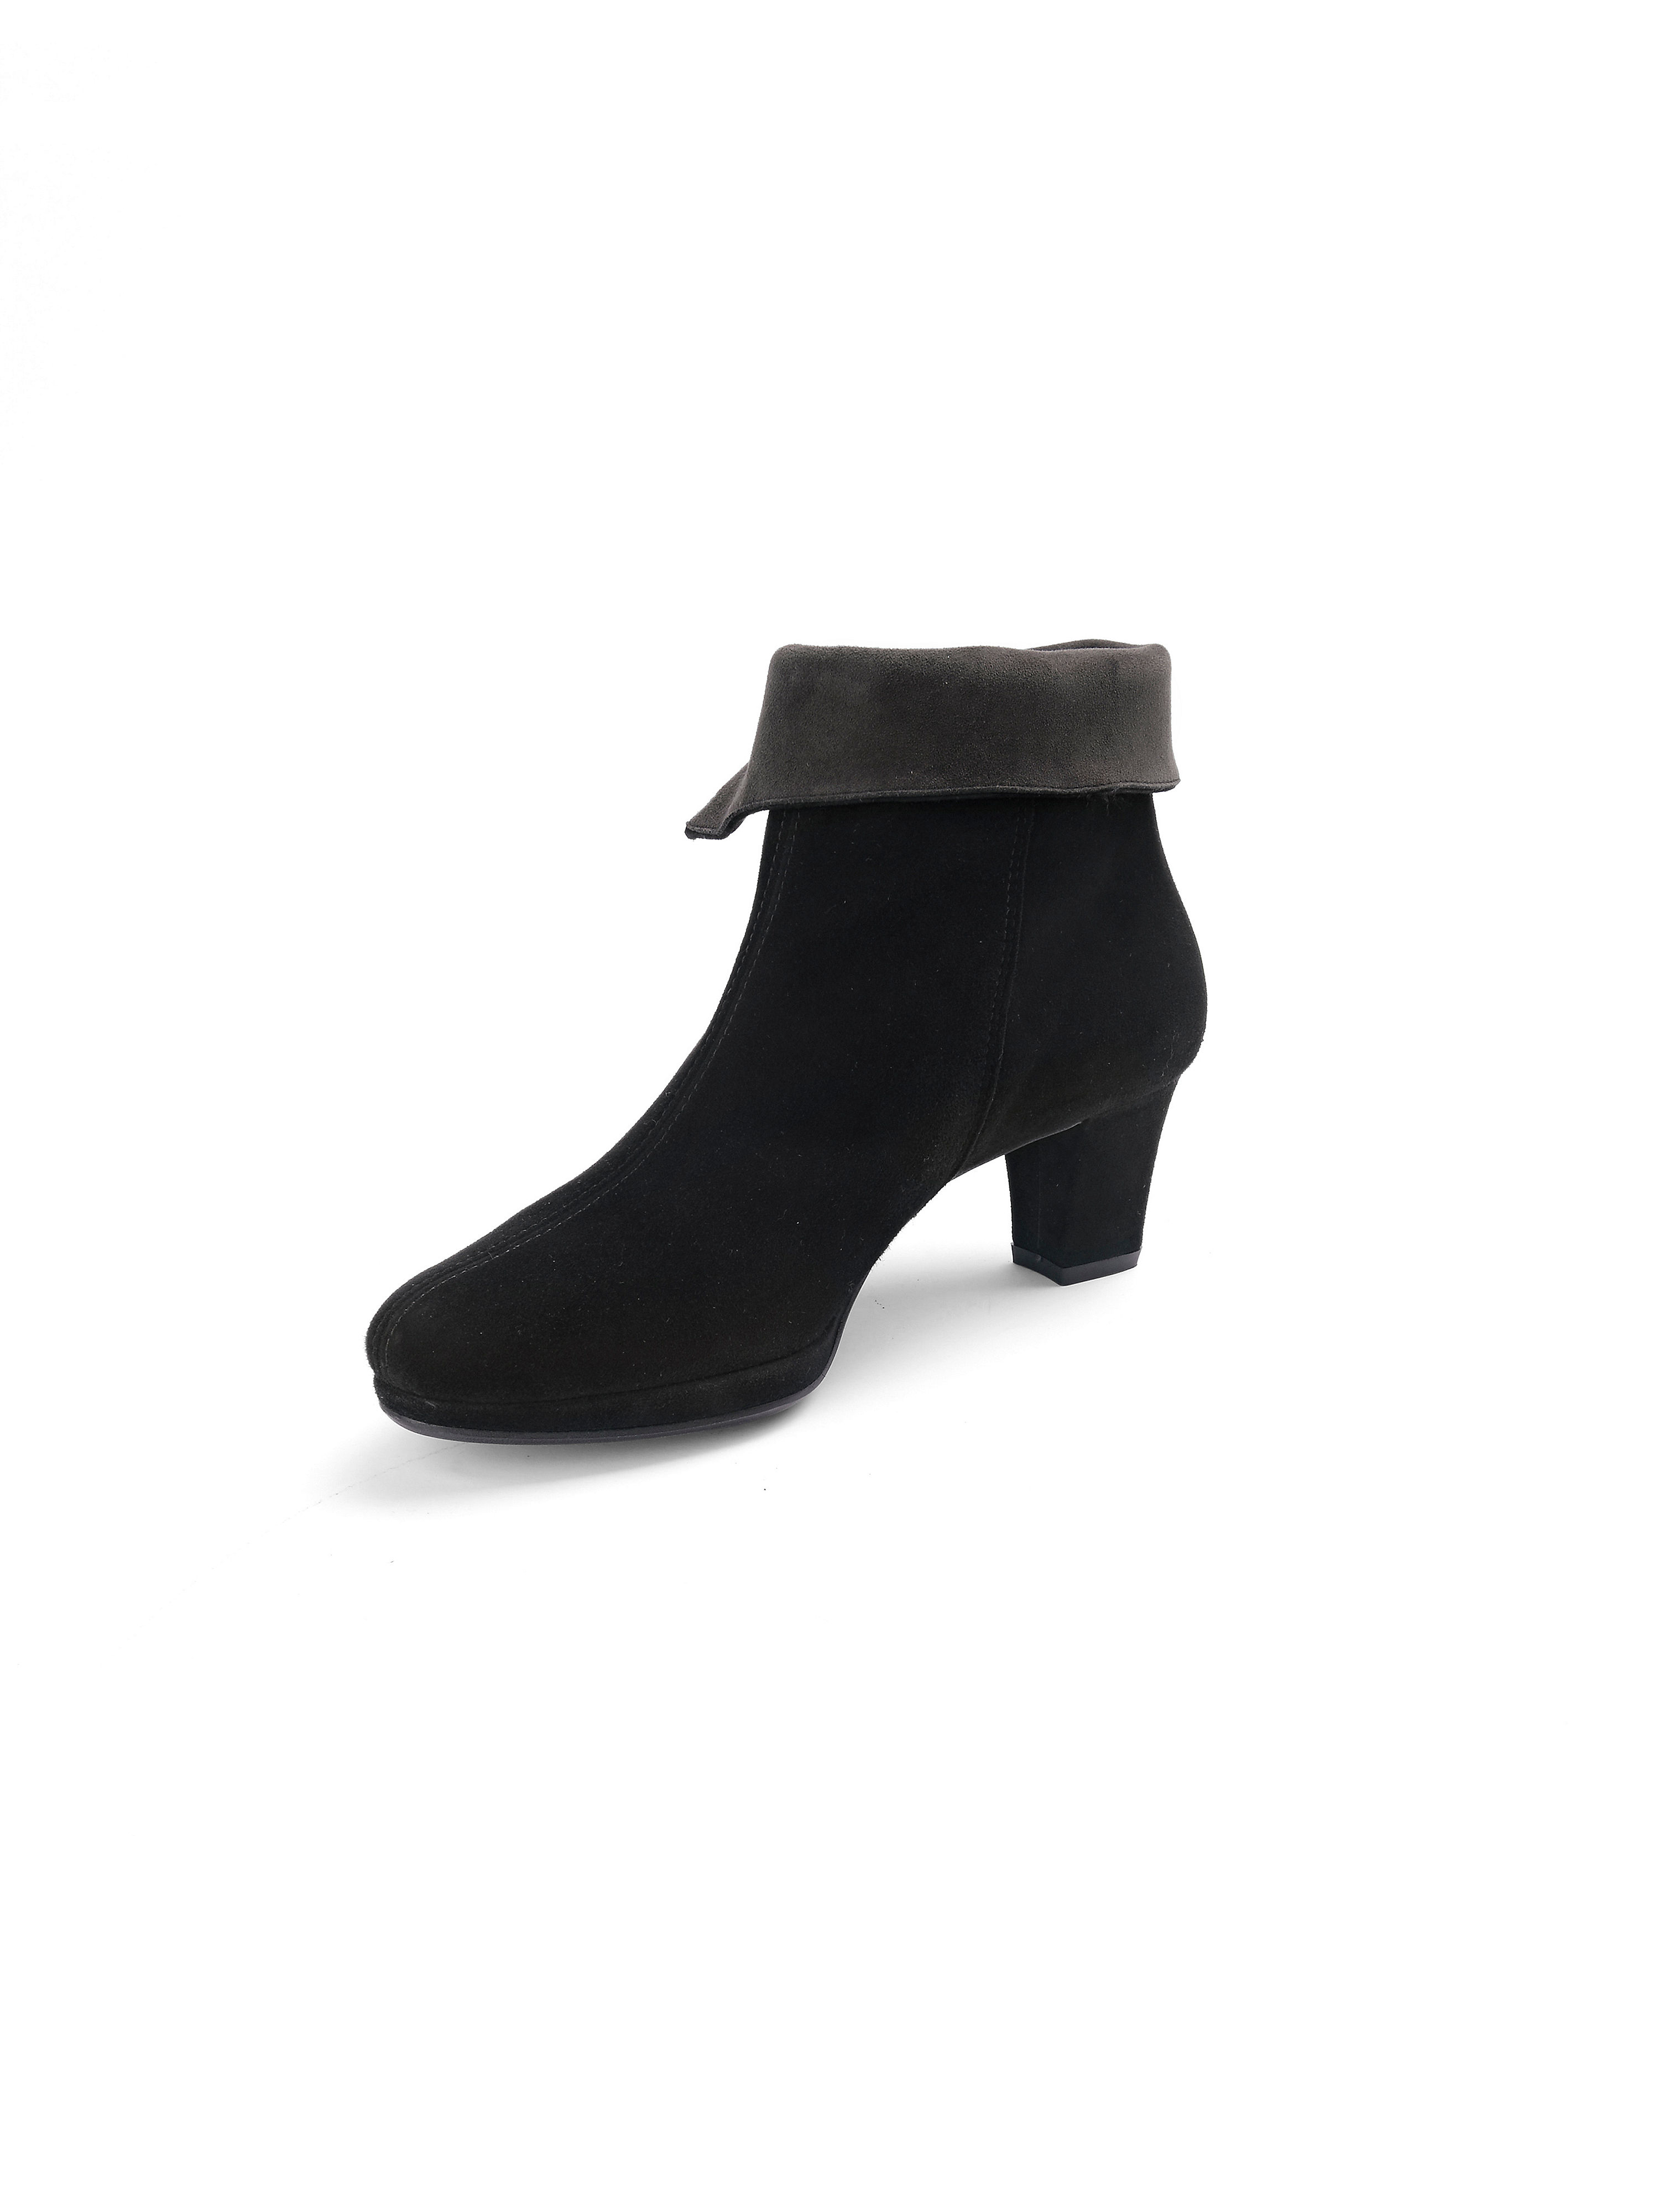 kidskin-suede-ankle-boots-from-paul-green-black